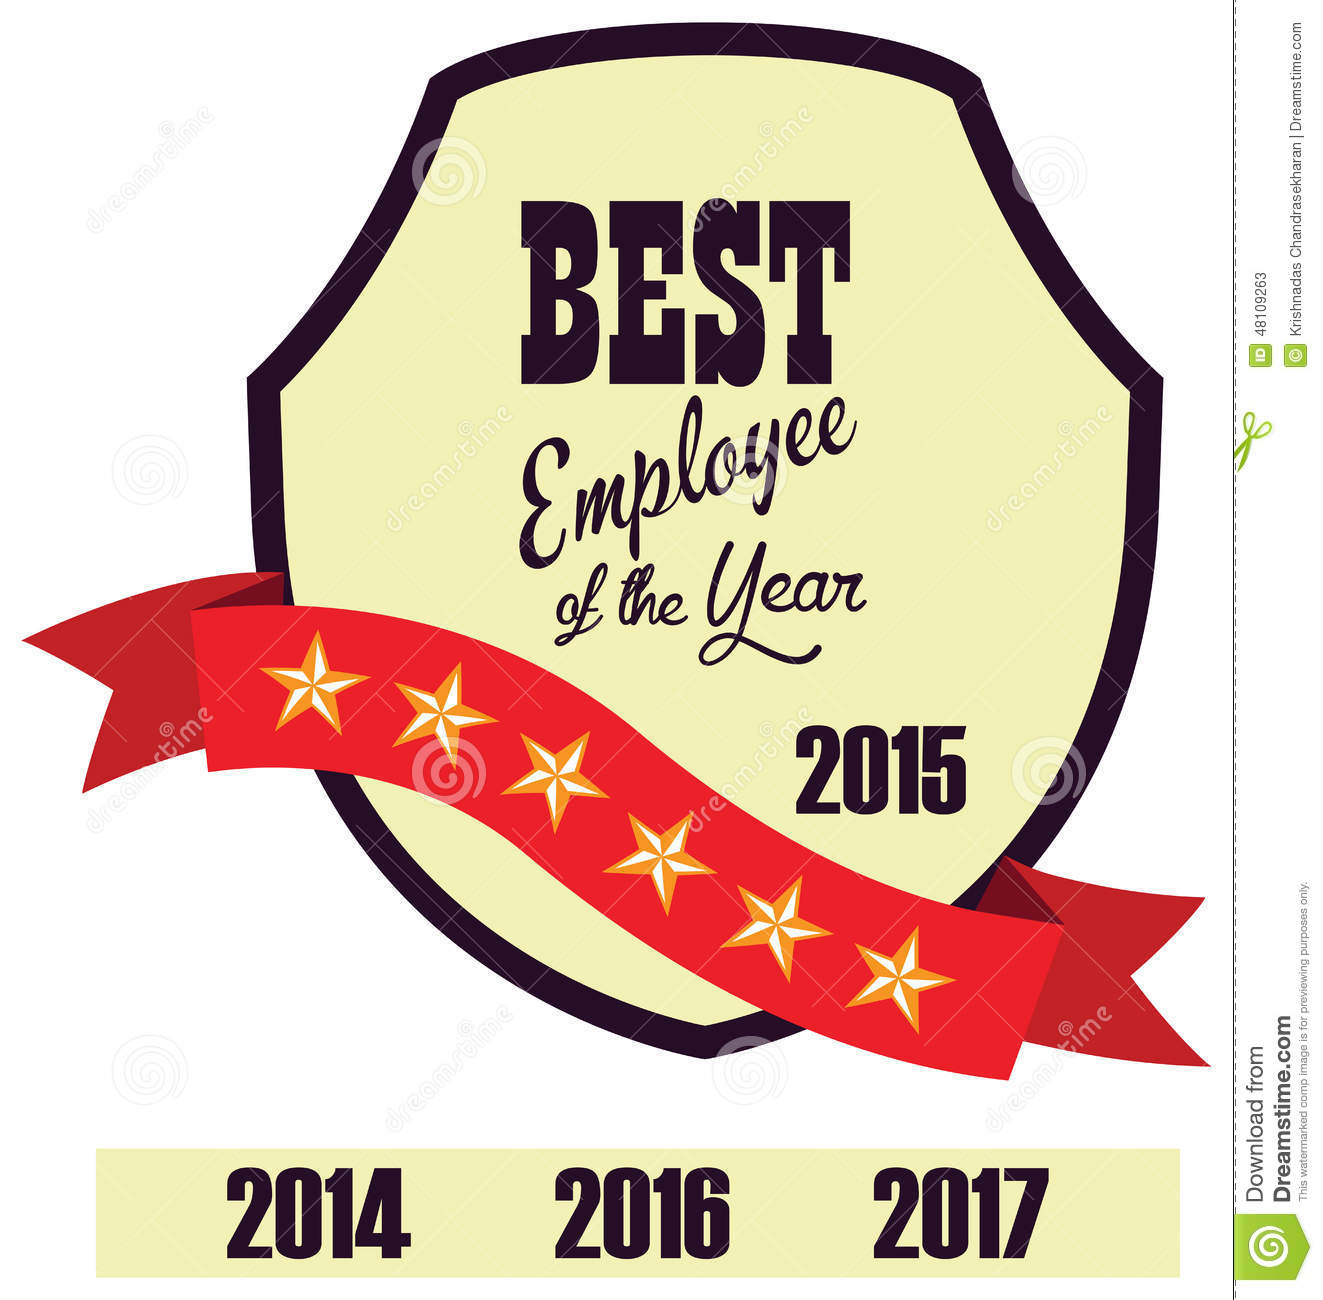 best employee of the year certificate